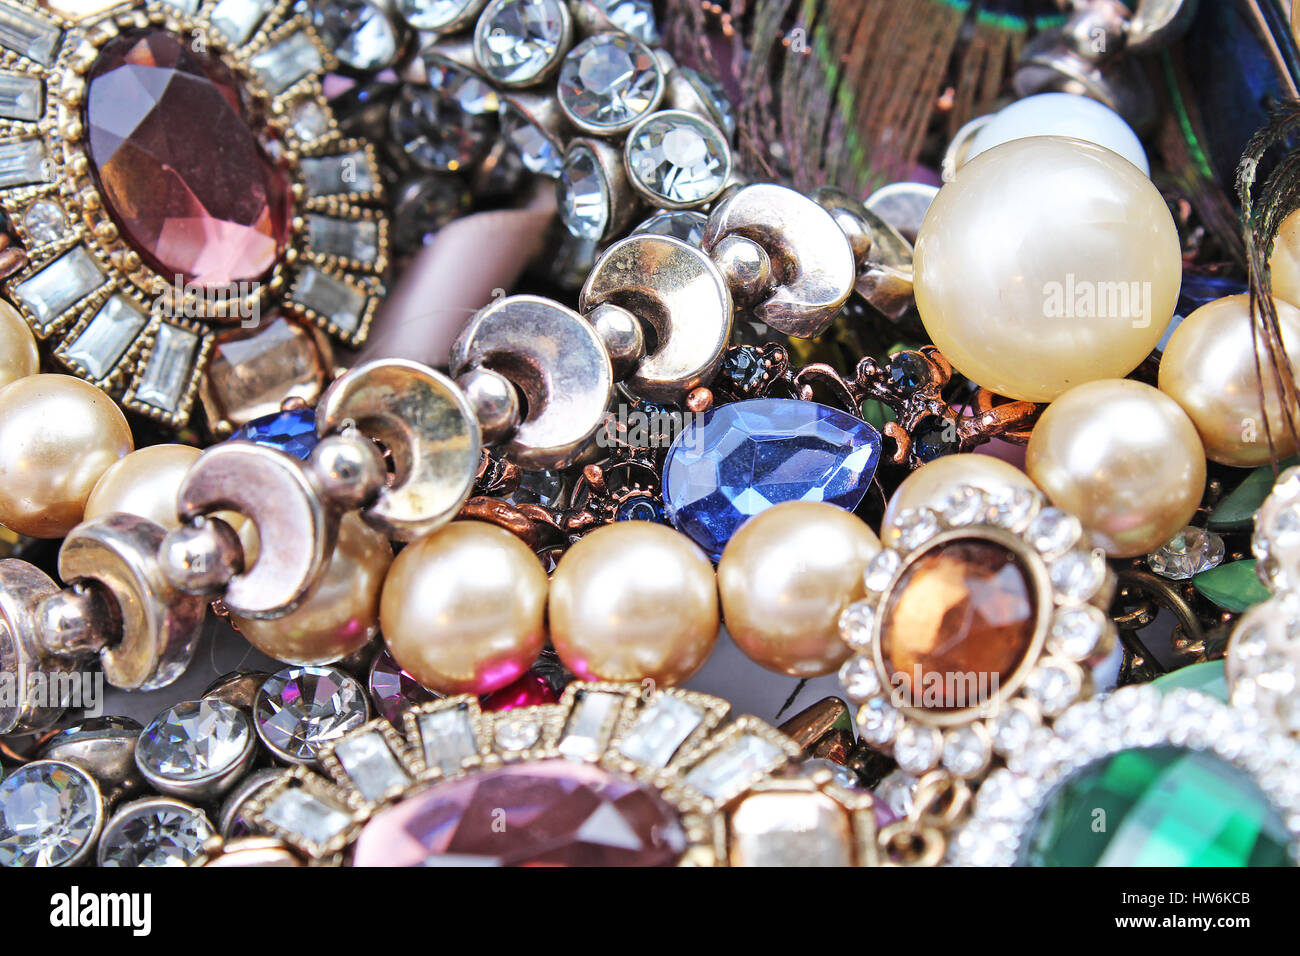 Jewels. - Stock Image